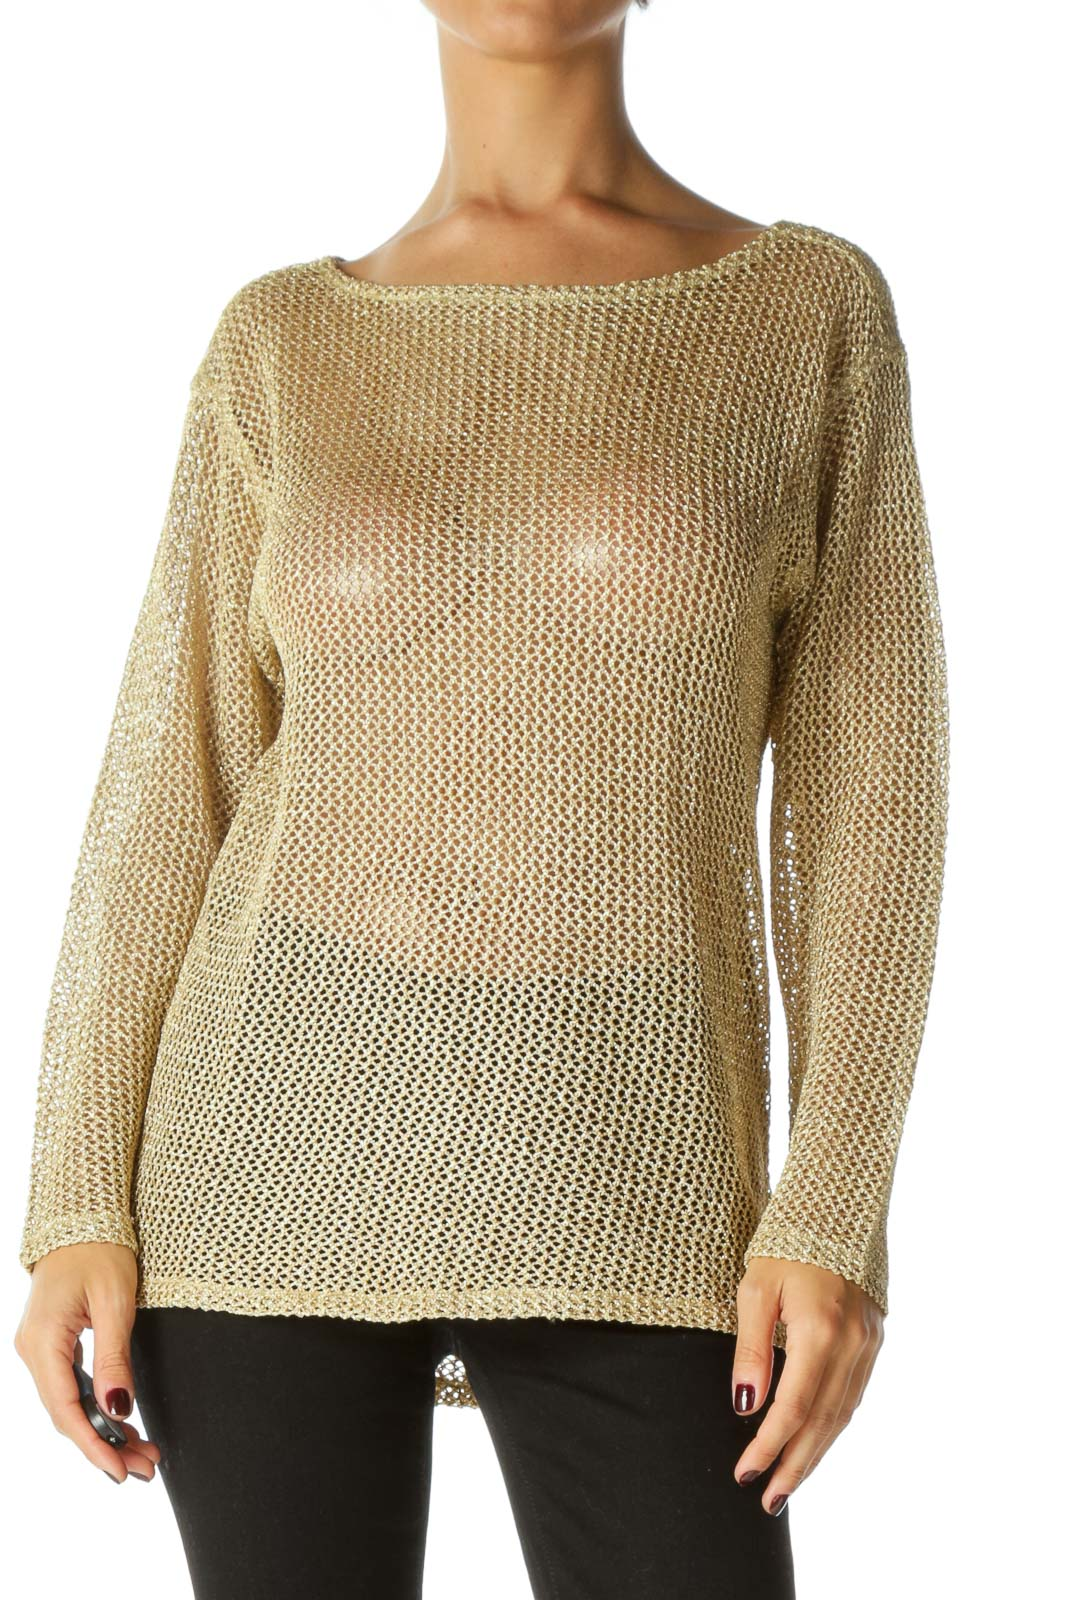 Gold Round Neck 3/4 Sleeve See Through Knit Top Front